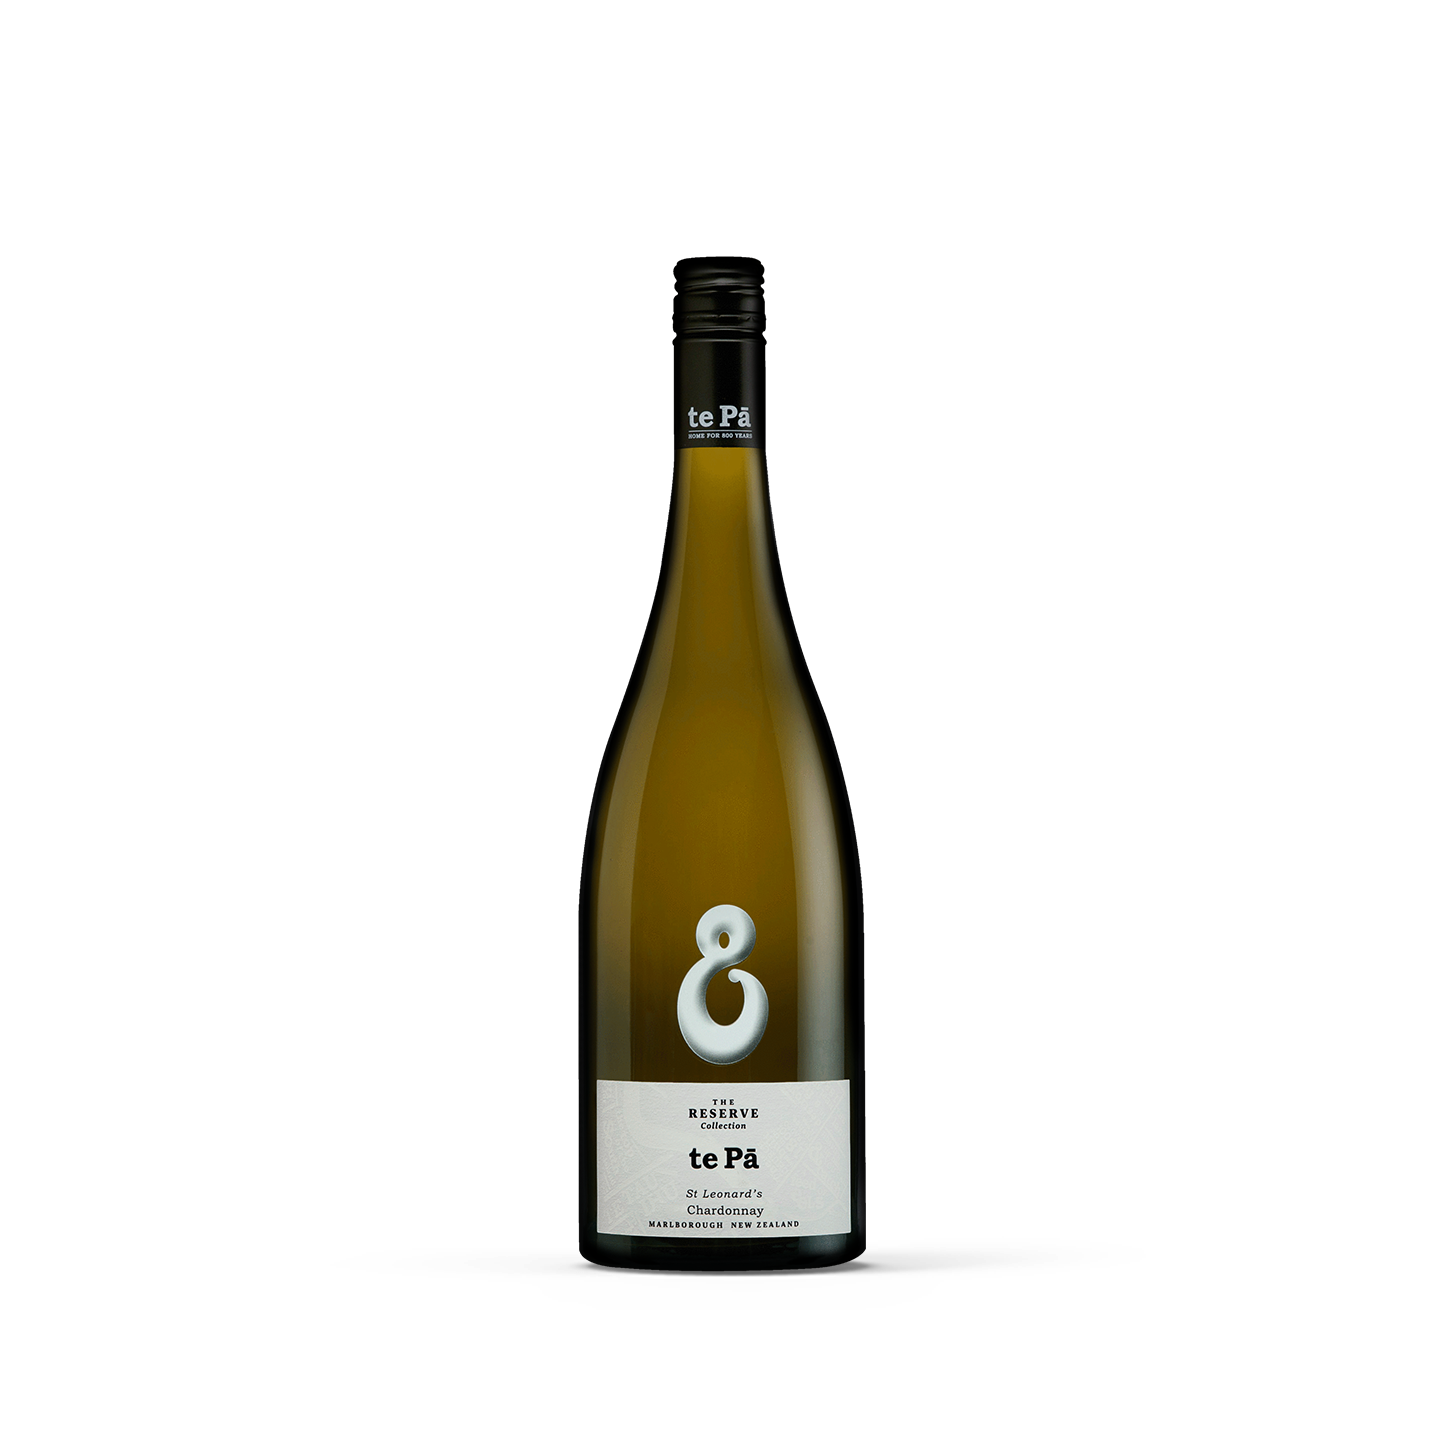 te Pā Reserve Collection St. Leonard's Chardonnay